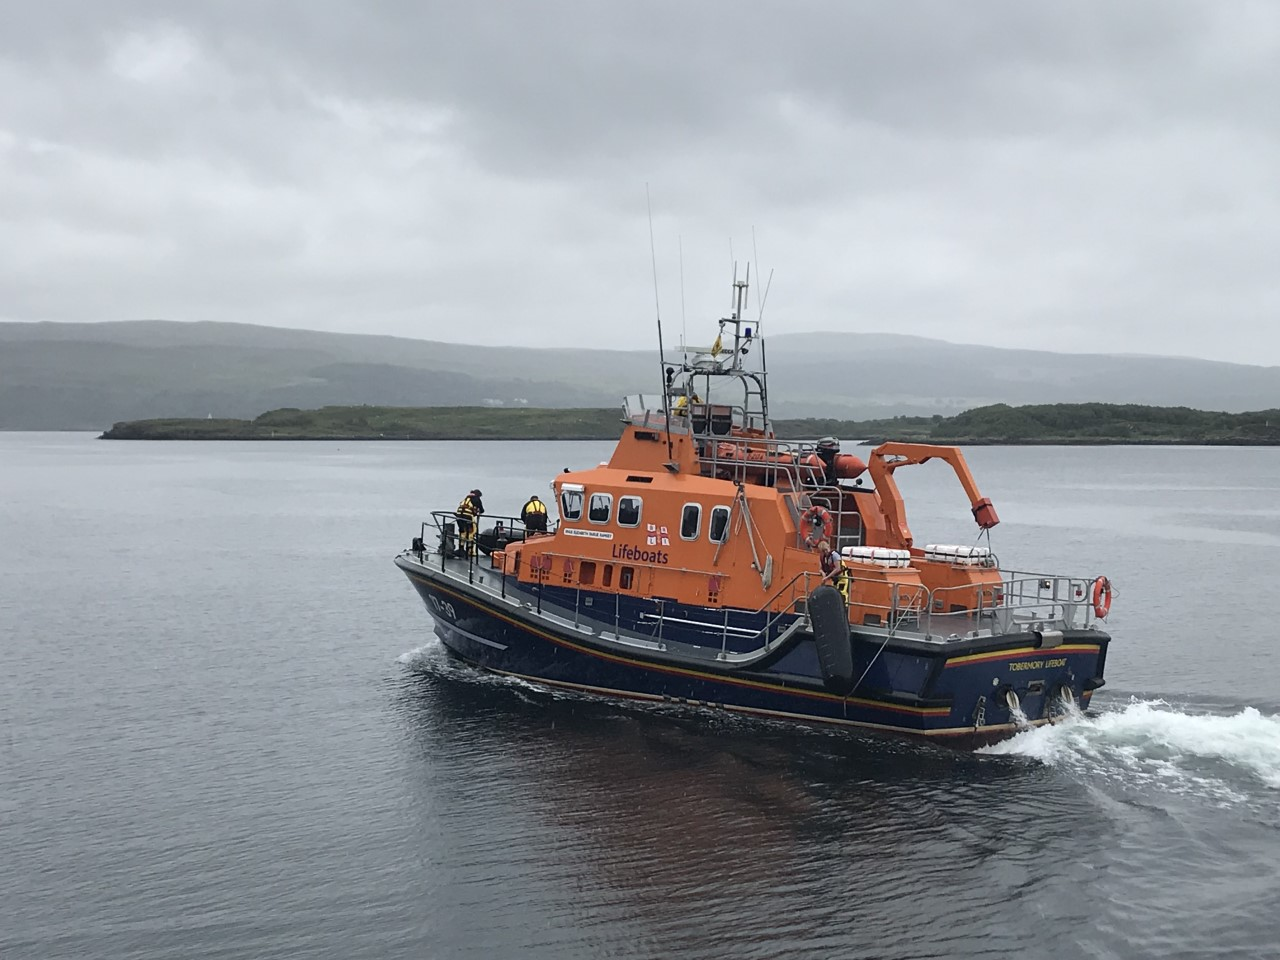 Tobermory Severn class lifeboat